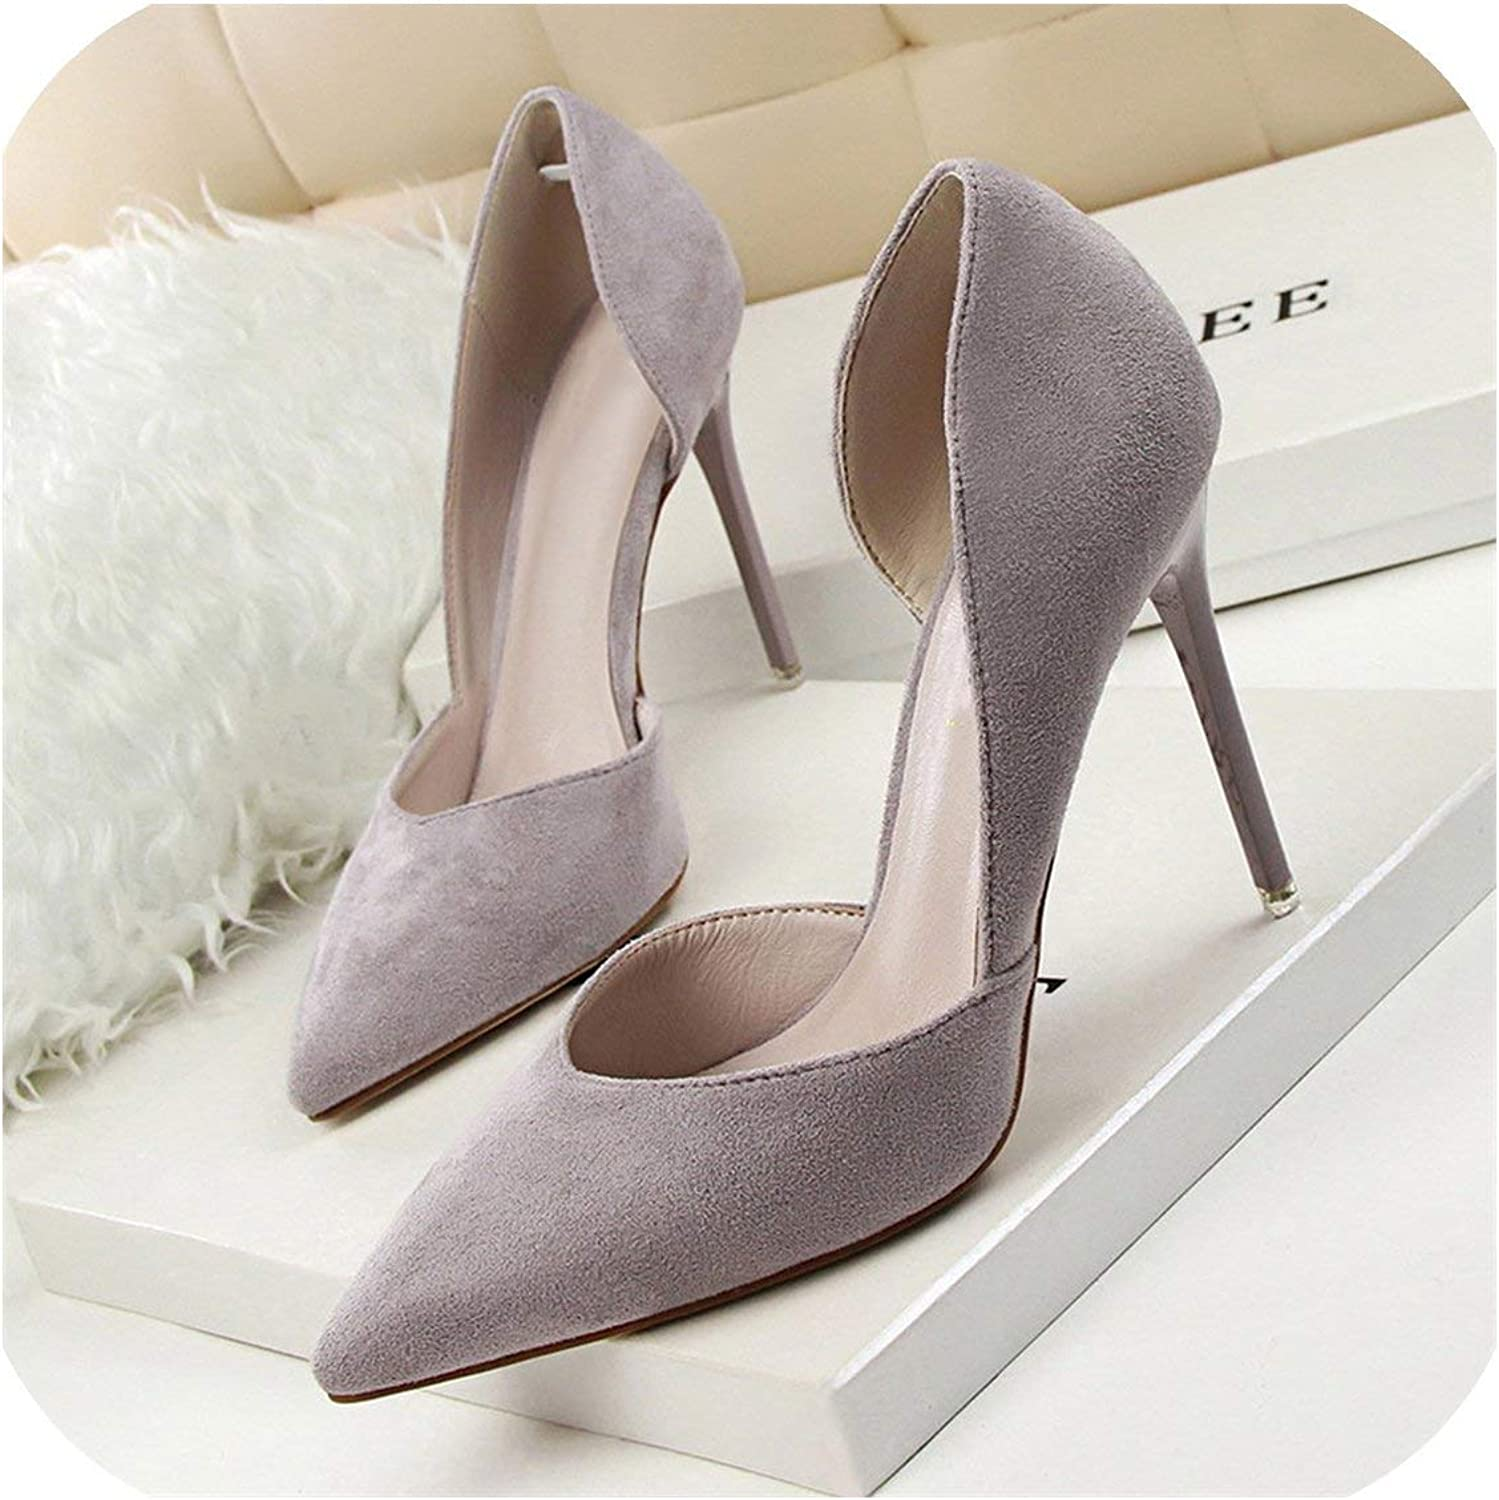 Sexy Side Cut-Outs Women Pumps Concise Solid Flock Shallow Pointed Toe High Heels 10Cm shoes